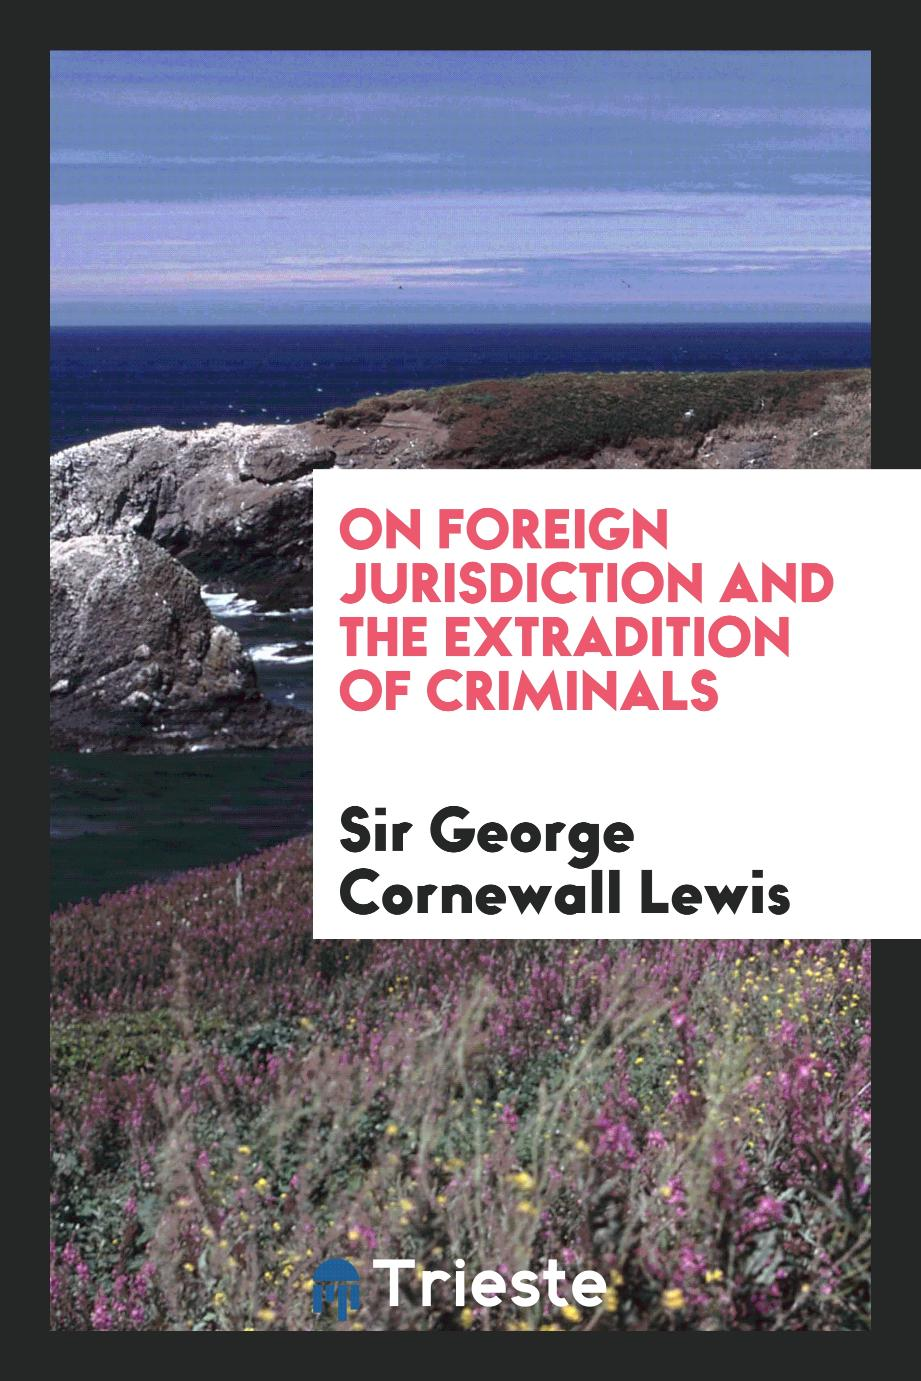 On Foreign Jurisdiction and the Extradition of Criminals